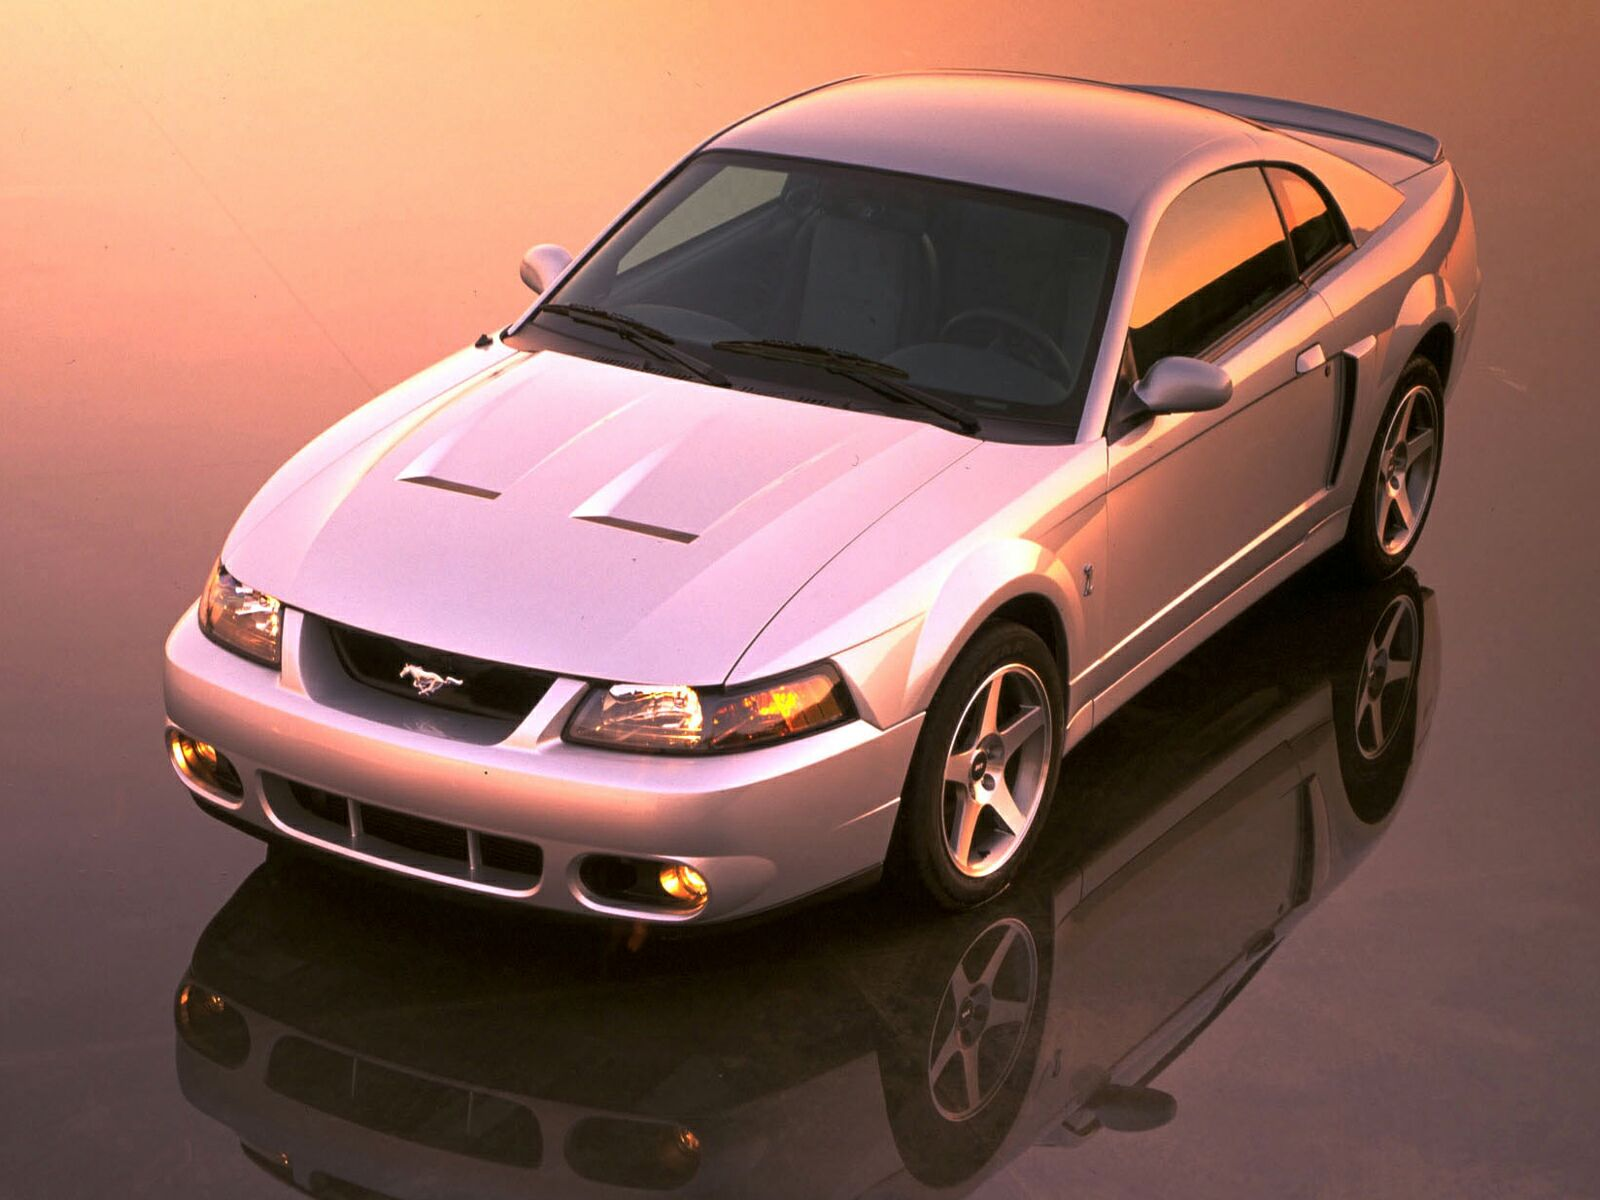 Ford Mustang Cobra photo 10615